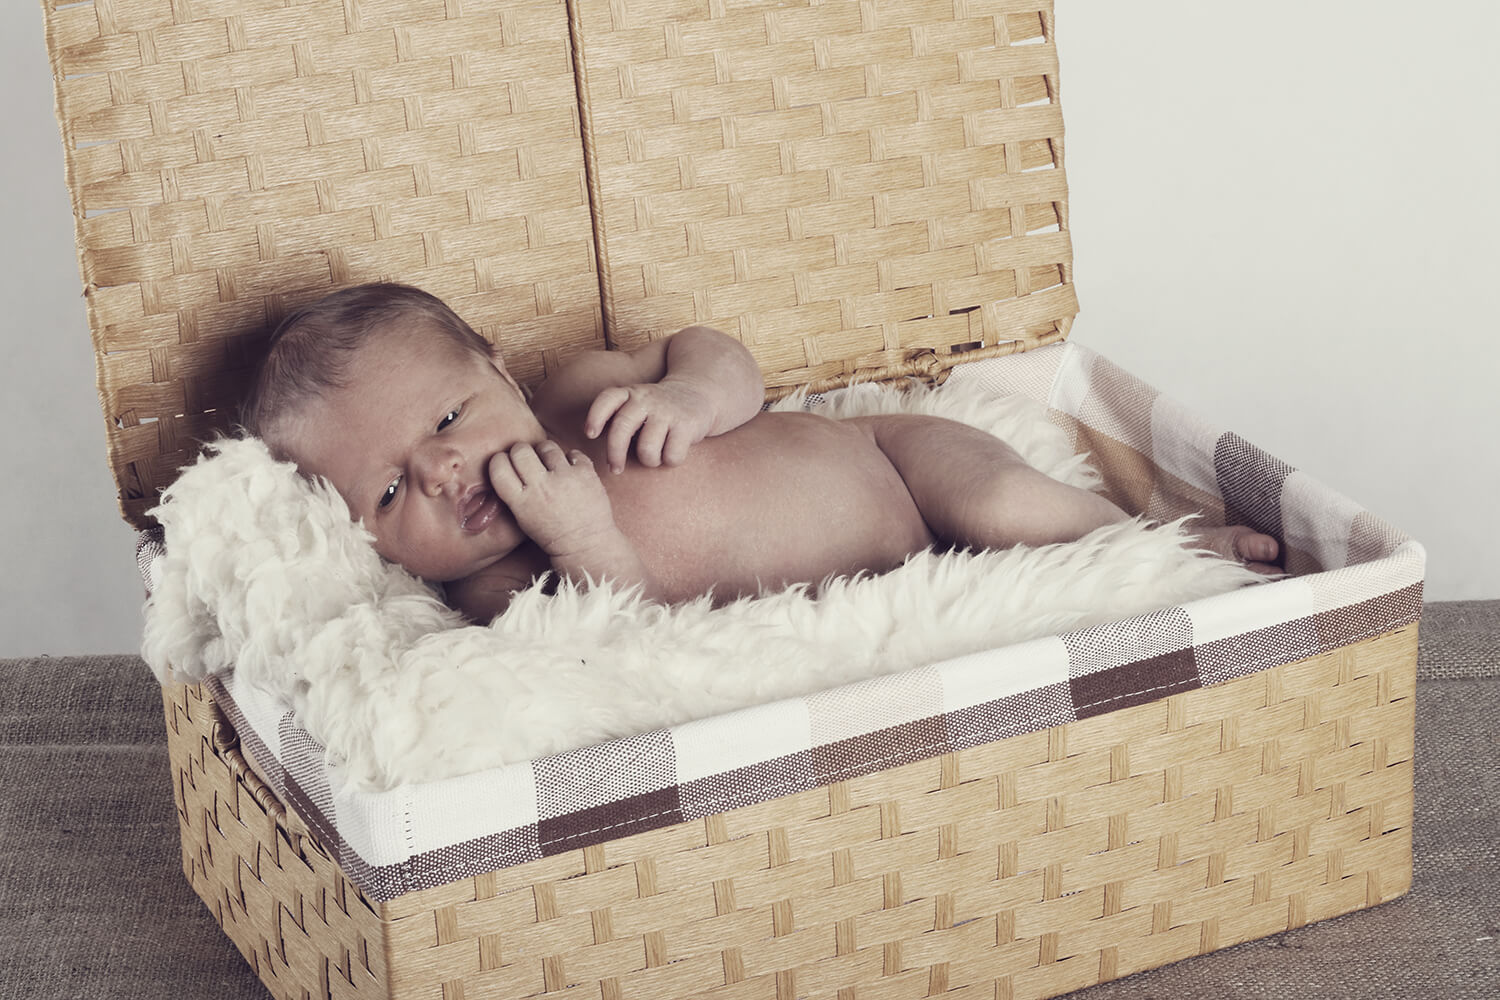 family photo of a newborn in a basket